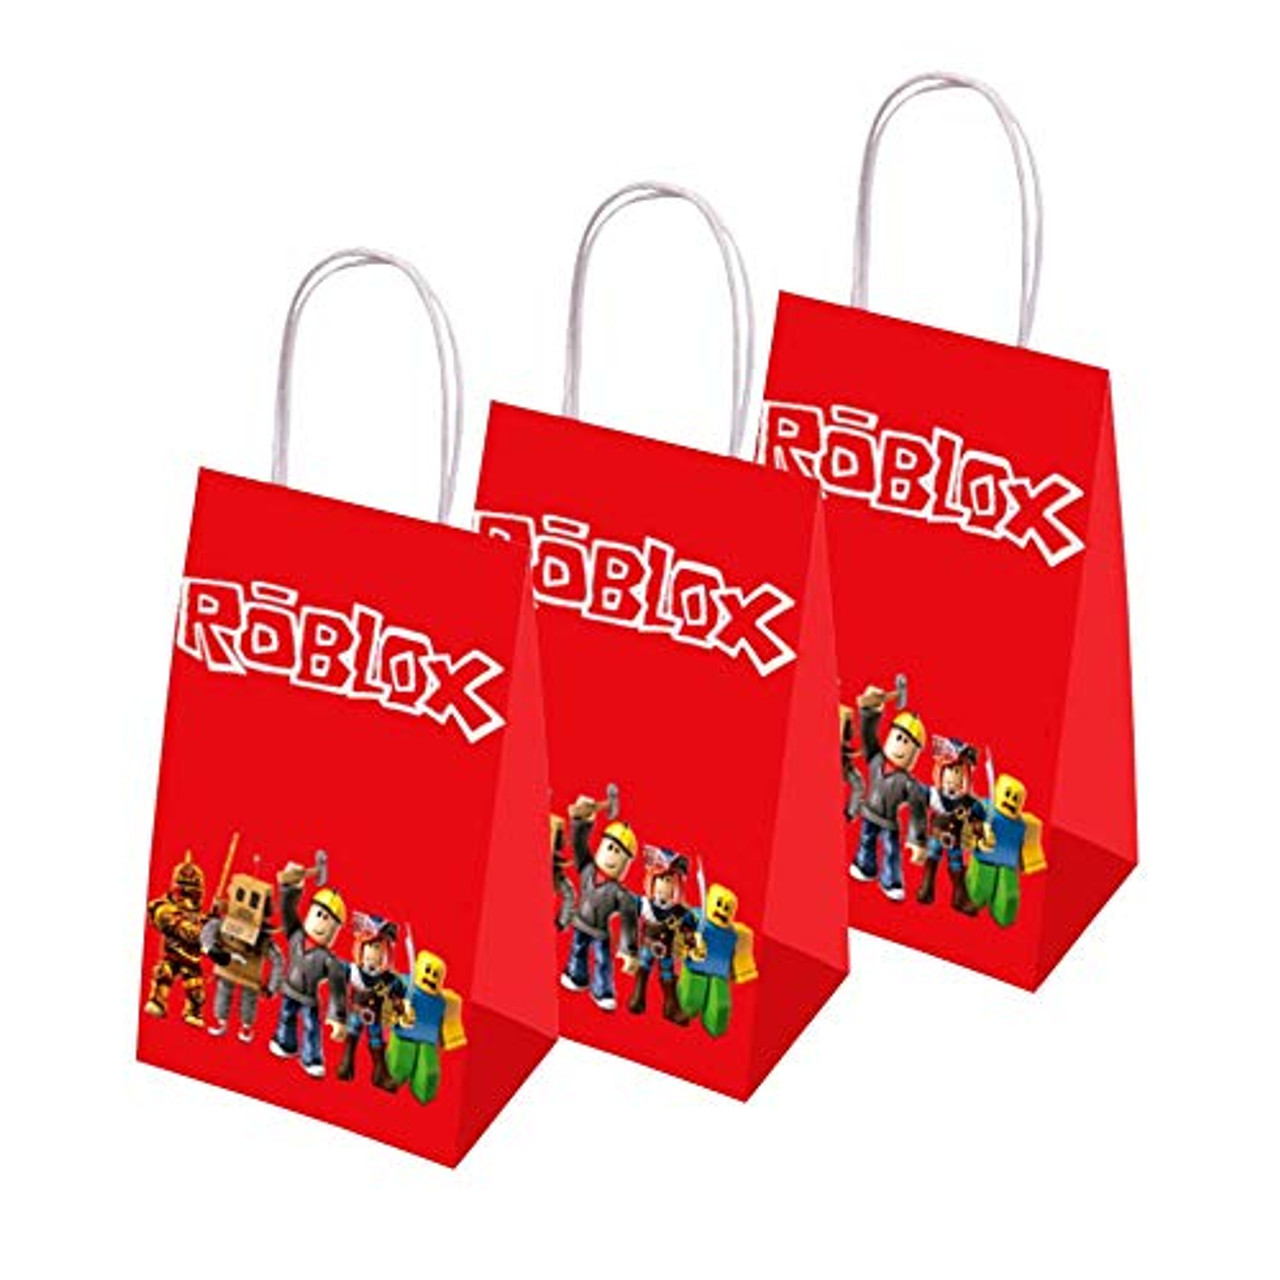 12 Gift Bags for Roblox Party Bags Birthday Decorations Party Bags Supplies Set for Children